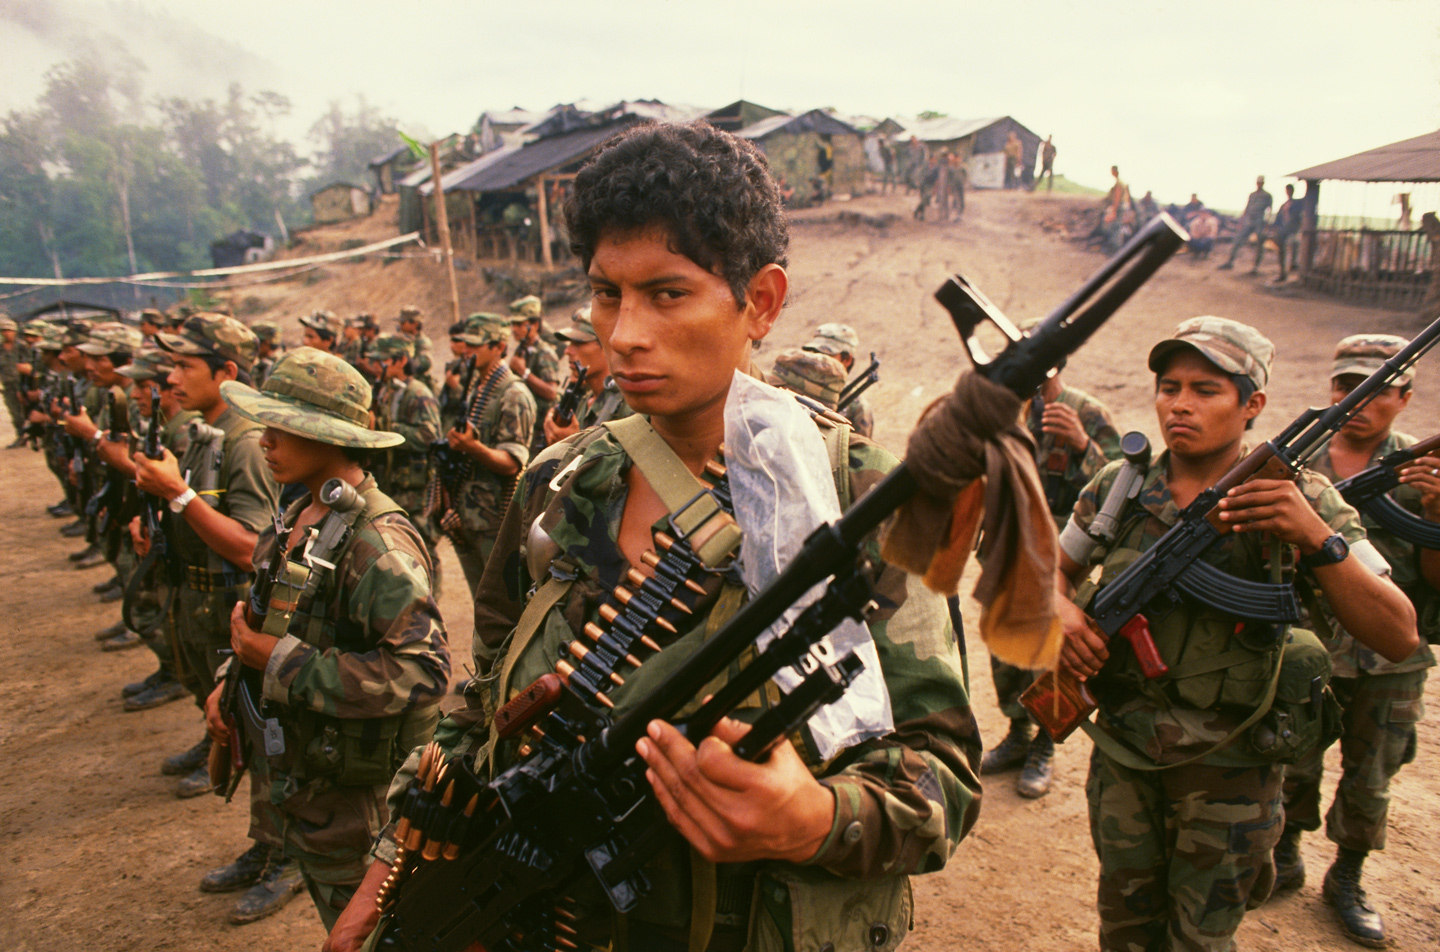 Contra Troops Training in Honduras (Photo by © Bill Gentile/CORBIS/Corbis via Getty Images)